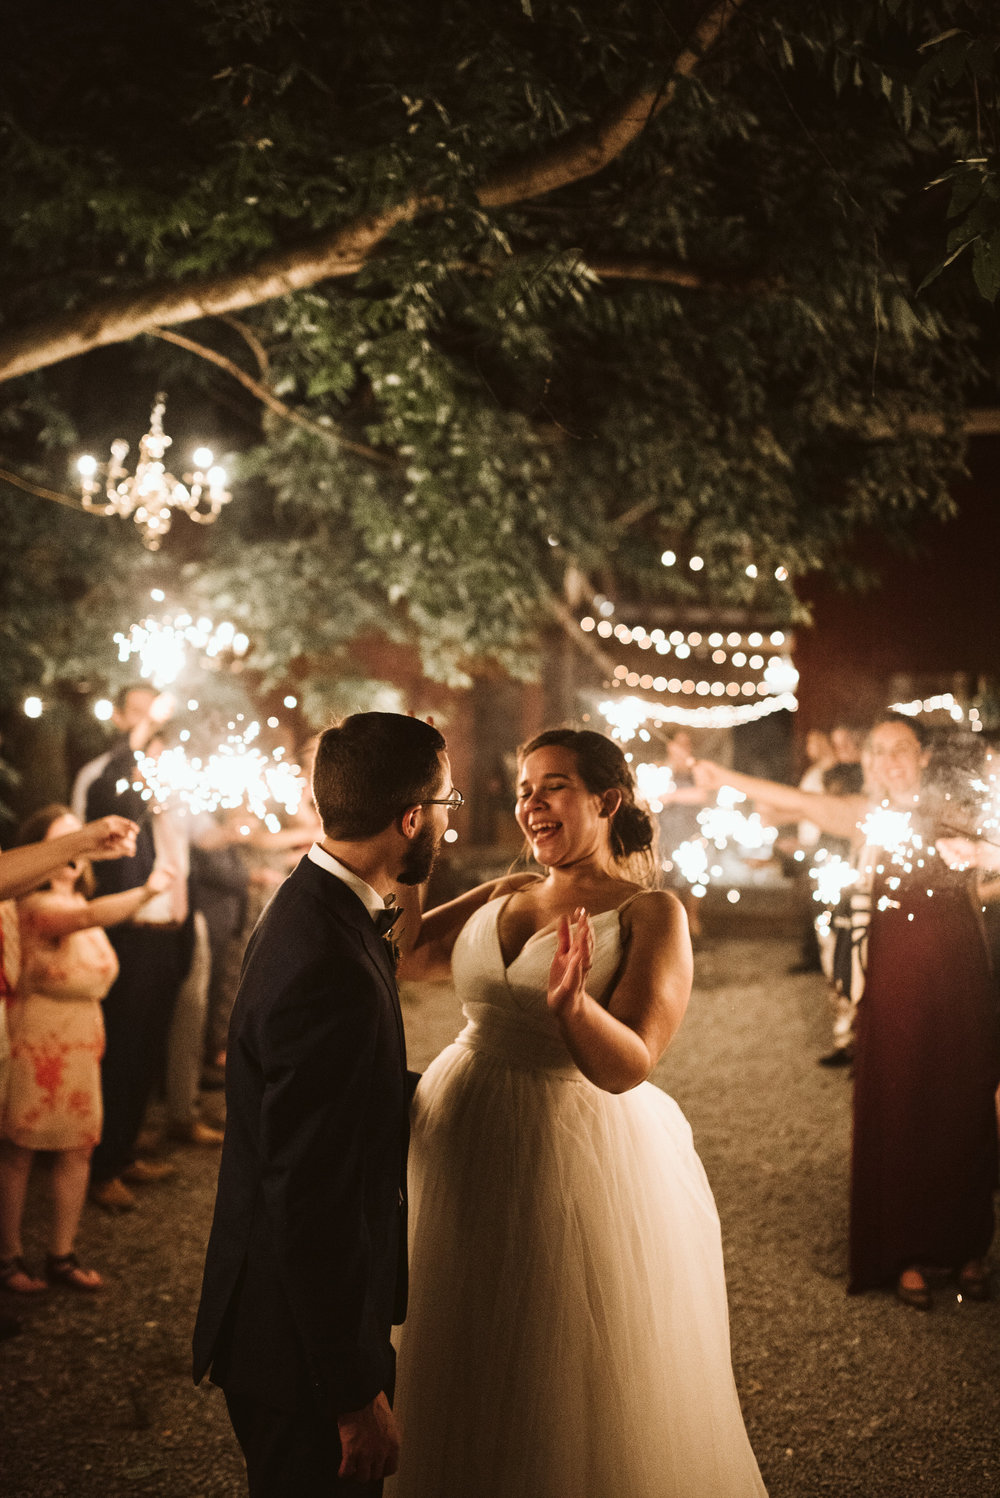 Rocklands Farm, Maryland, Intimate Wedding, Baltimore Wedding Photographer, Sungold Flower Co, Rustic, Romantic, Barn Wedding, Bride and Groom Laughing While Surrounded by Sparklers